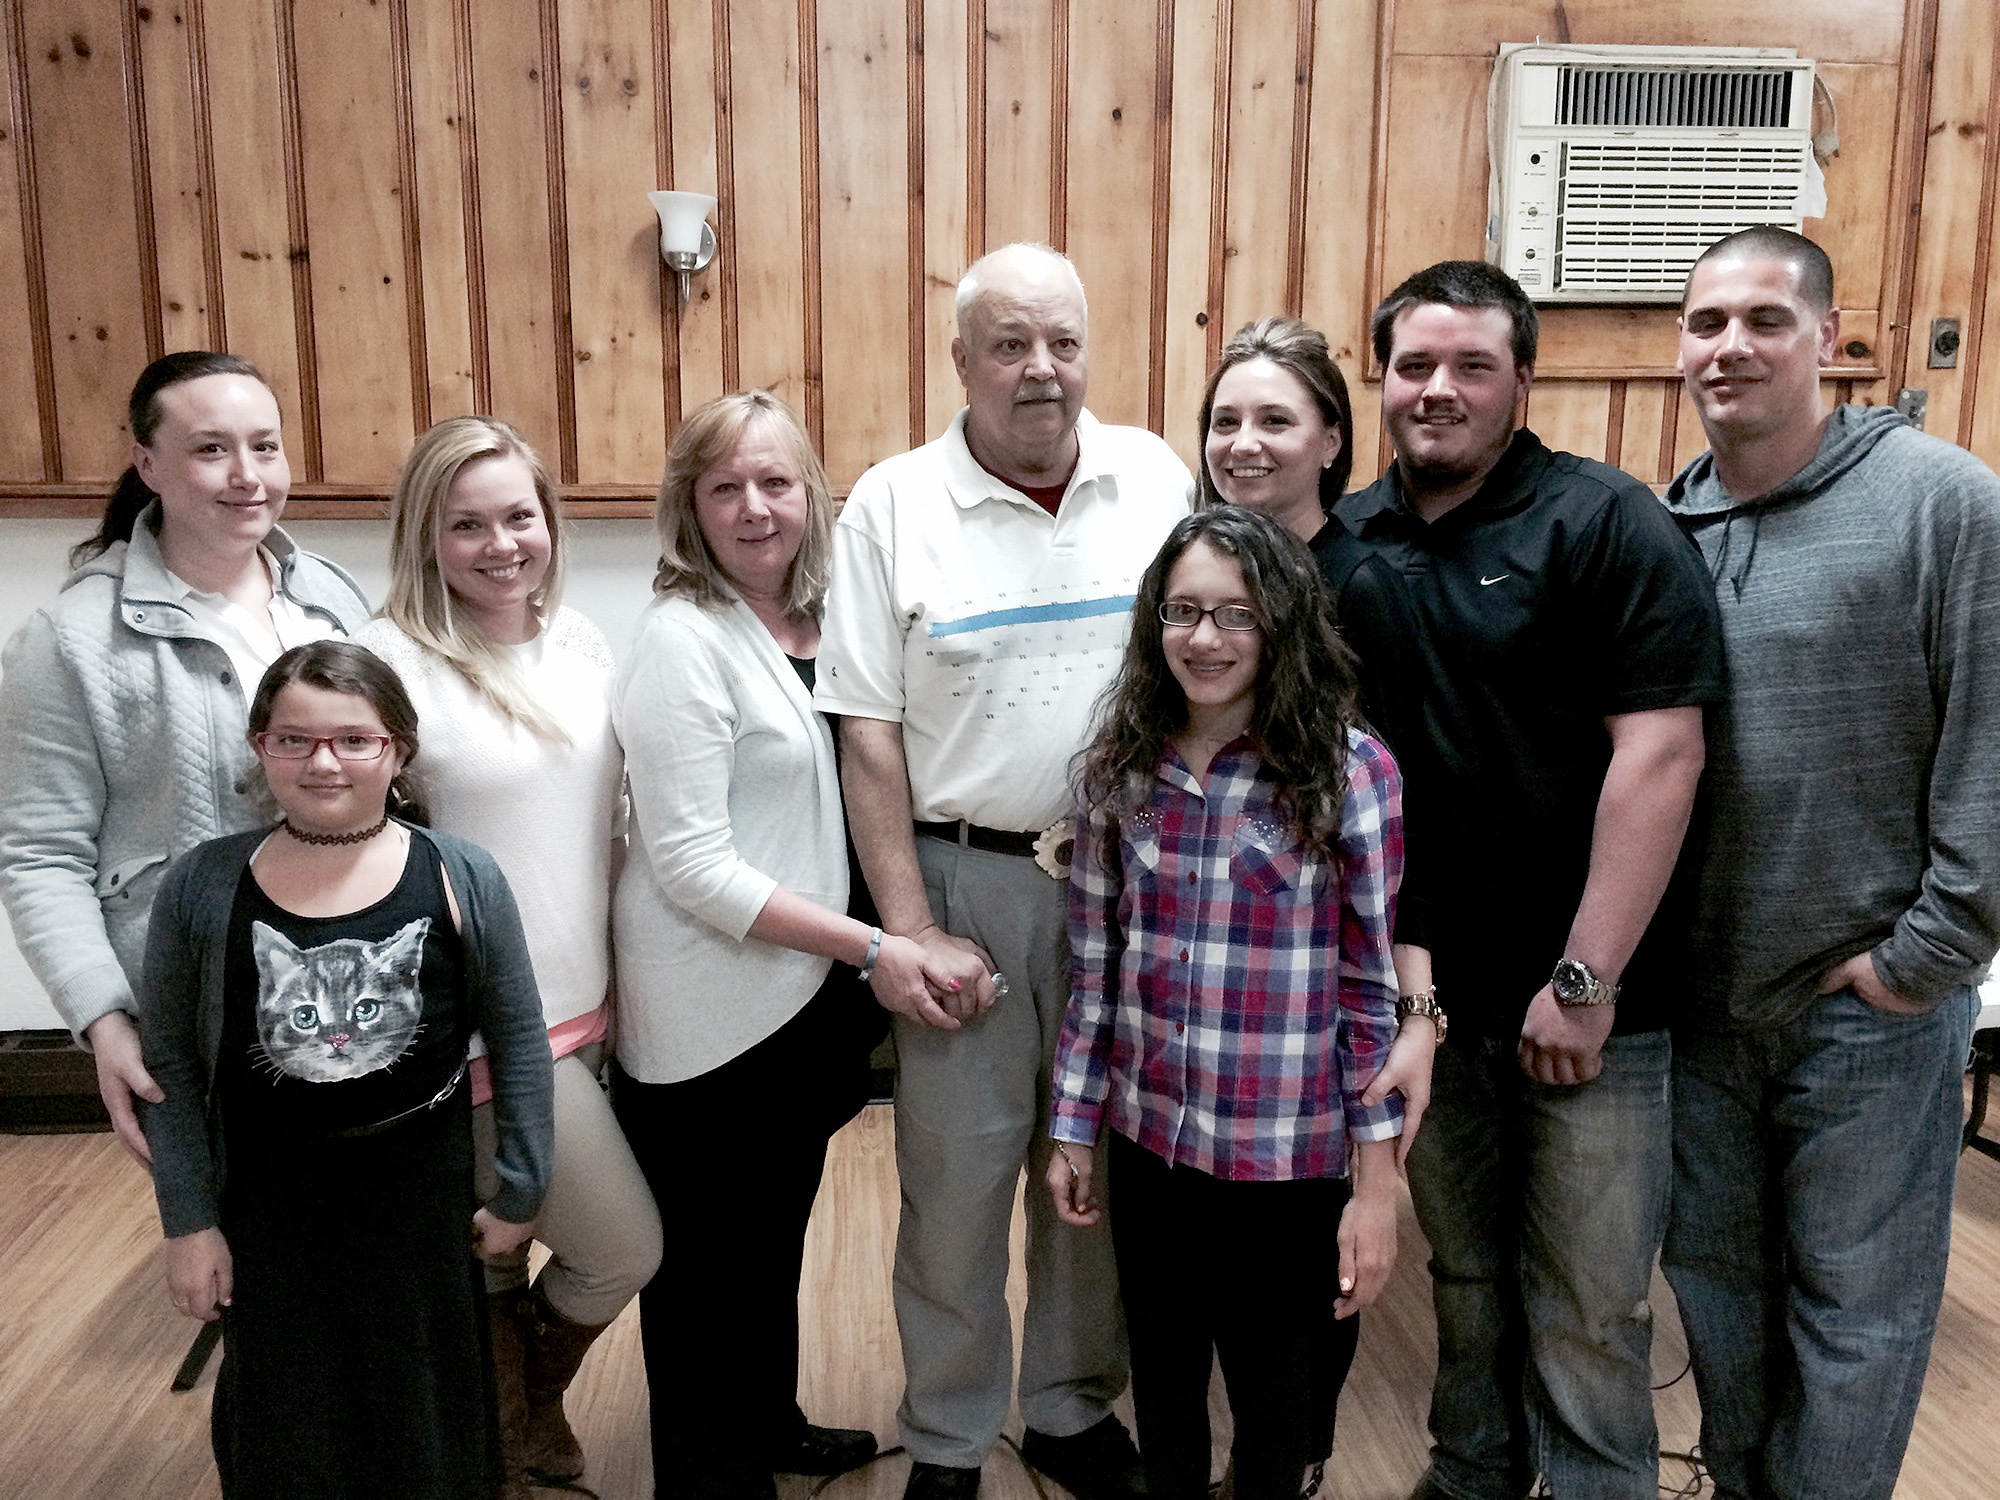 (above, back, l-r) Katelyn Sheehy (daughter), Dayna Sheehy (daughter), Linda Sheehy (wife), Jack Sheehy, Jaclyn Sheehy (daughter), John Sheehy III (son), Michael Wille (son-in-law). (front, l-r) Milani Wille and Alyssa Wille (granddaughters).